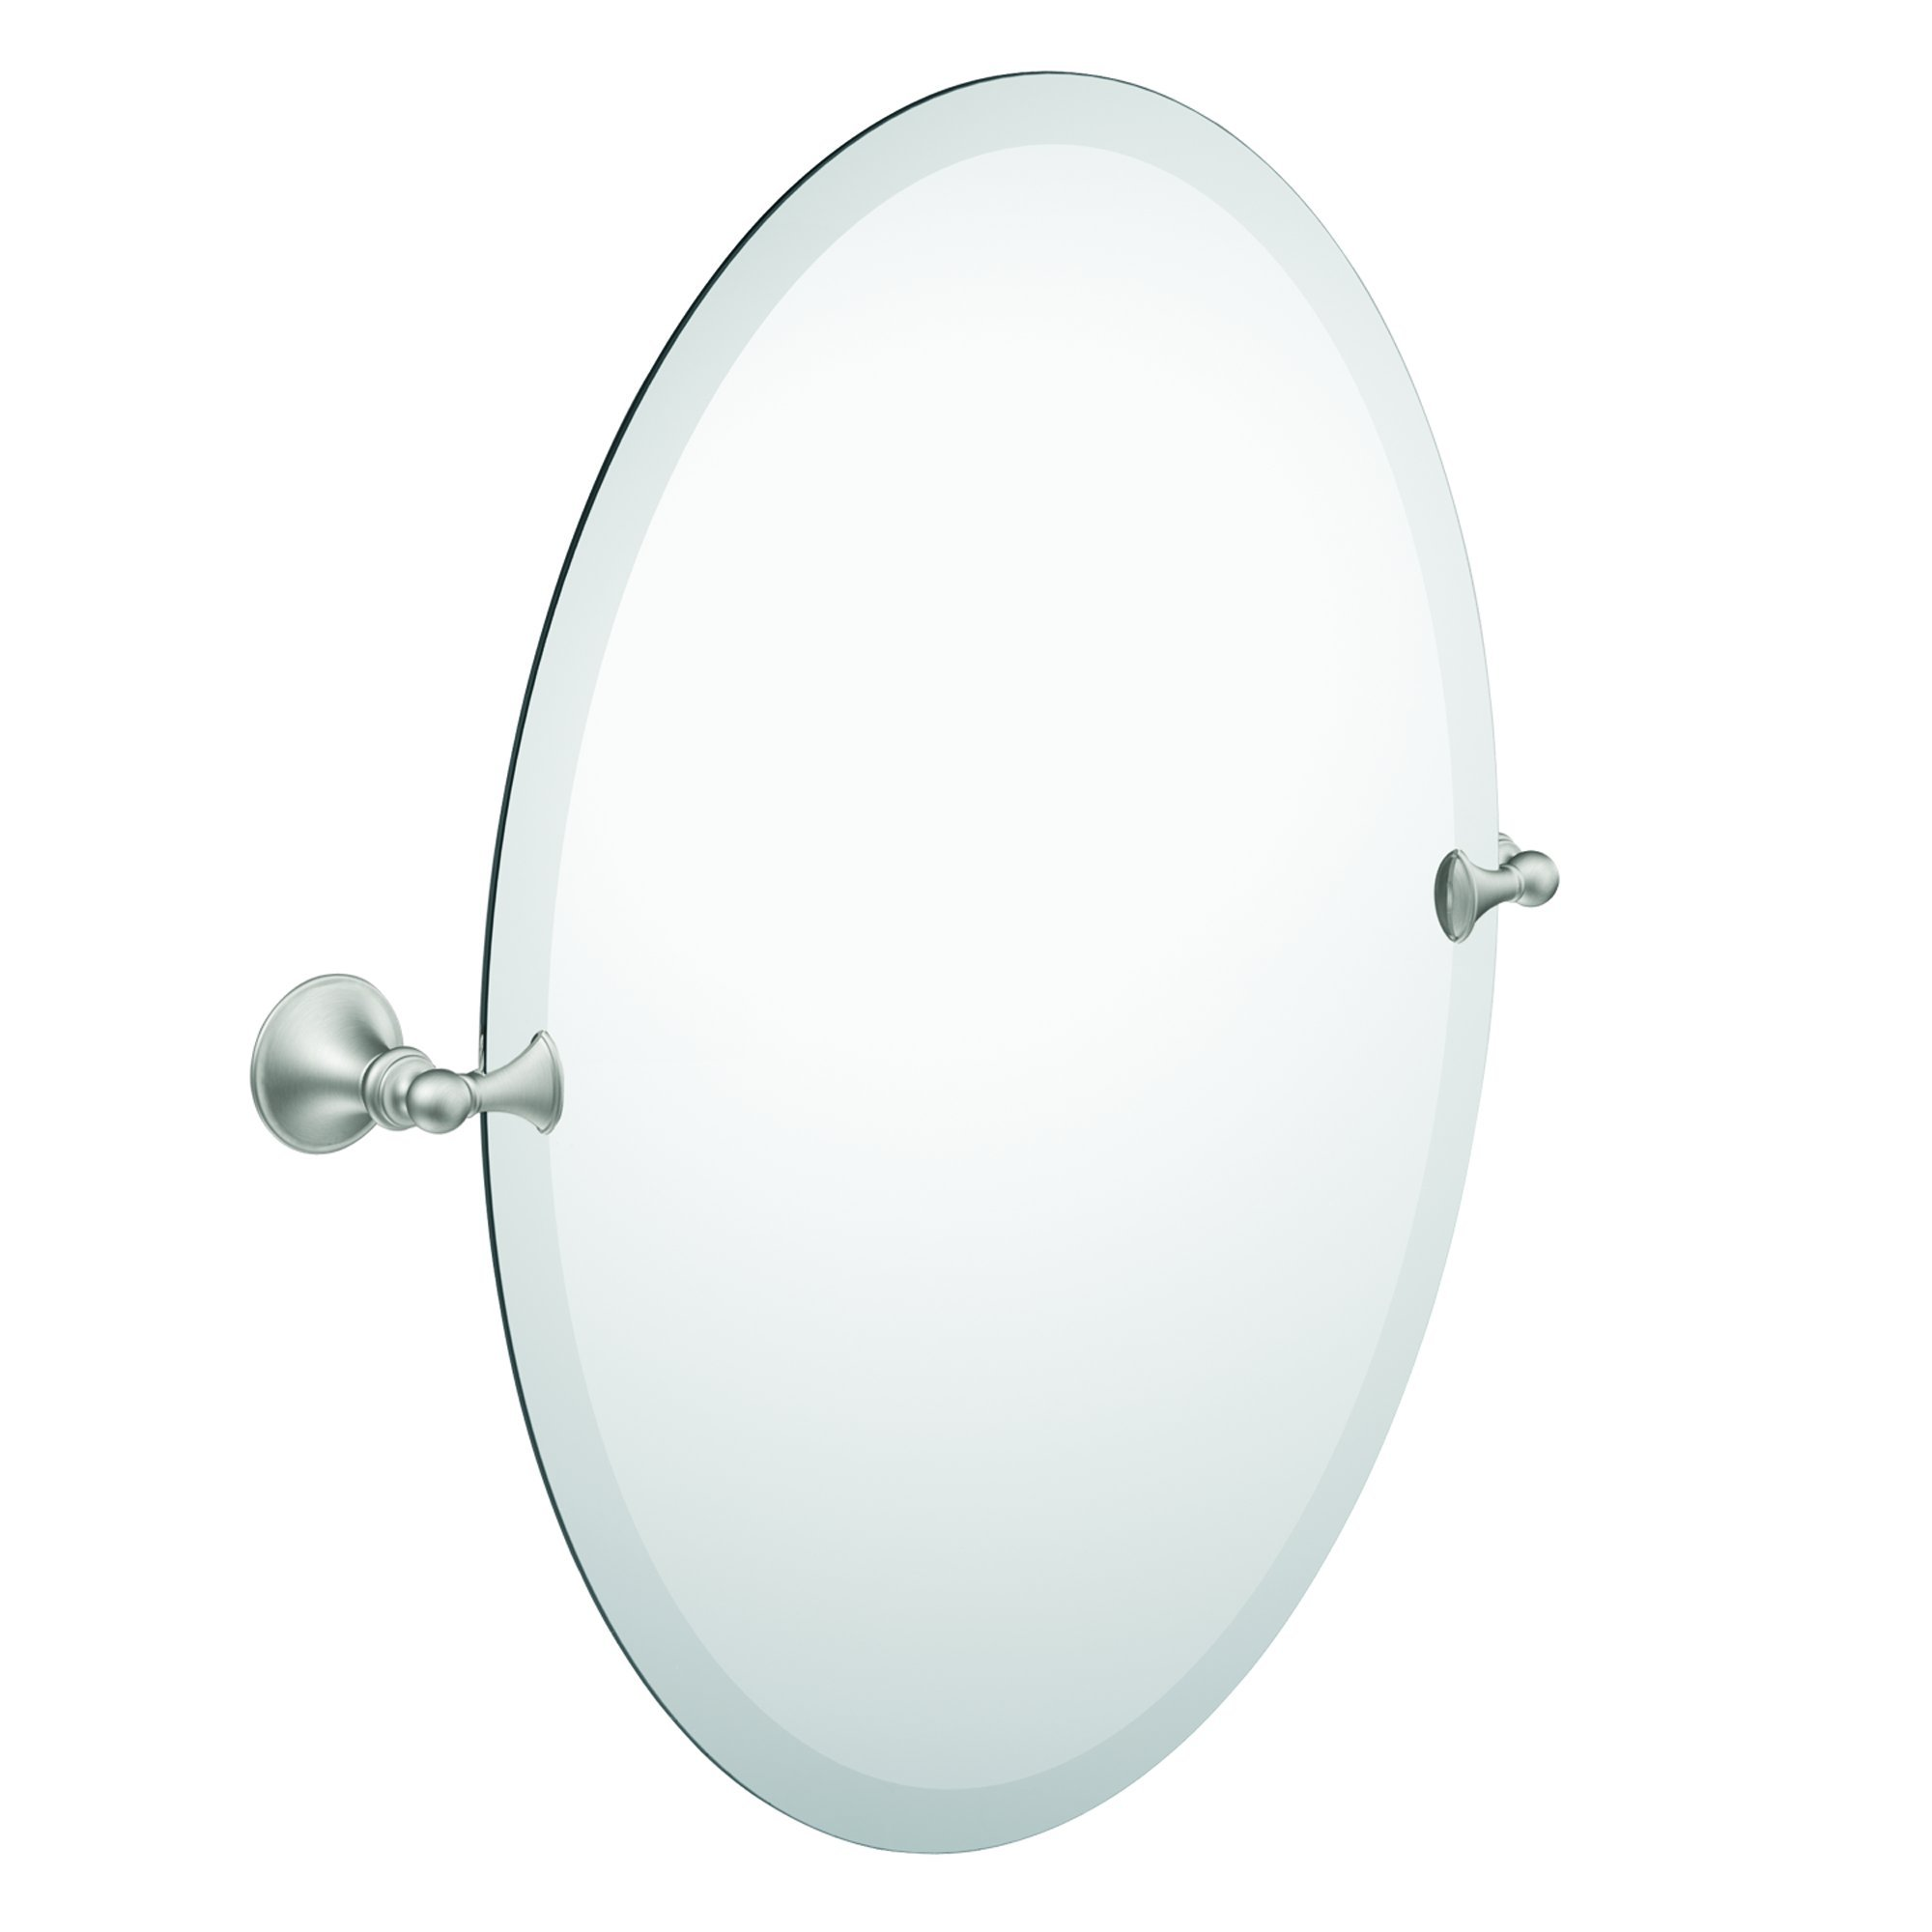 Moen DN2692BN Glenshire Bathroom Oval Tilting Mirror, Brushed Nickel